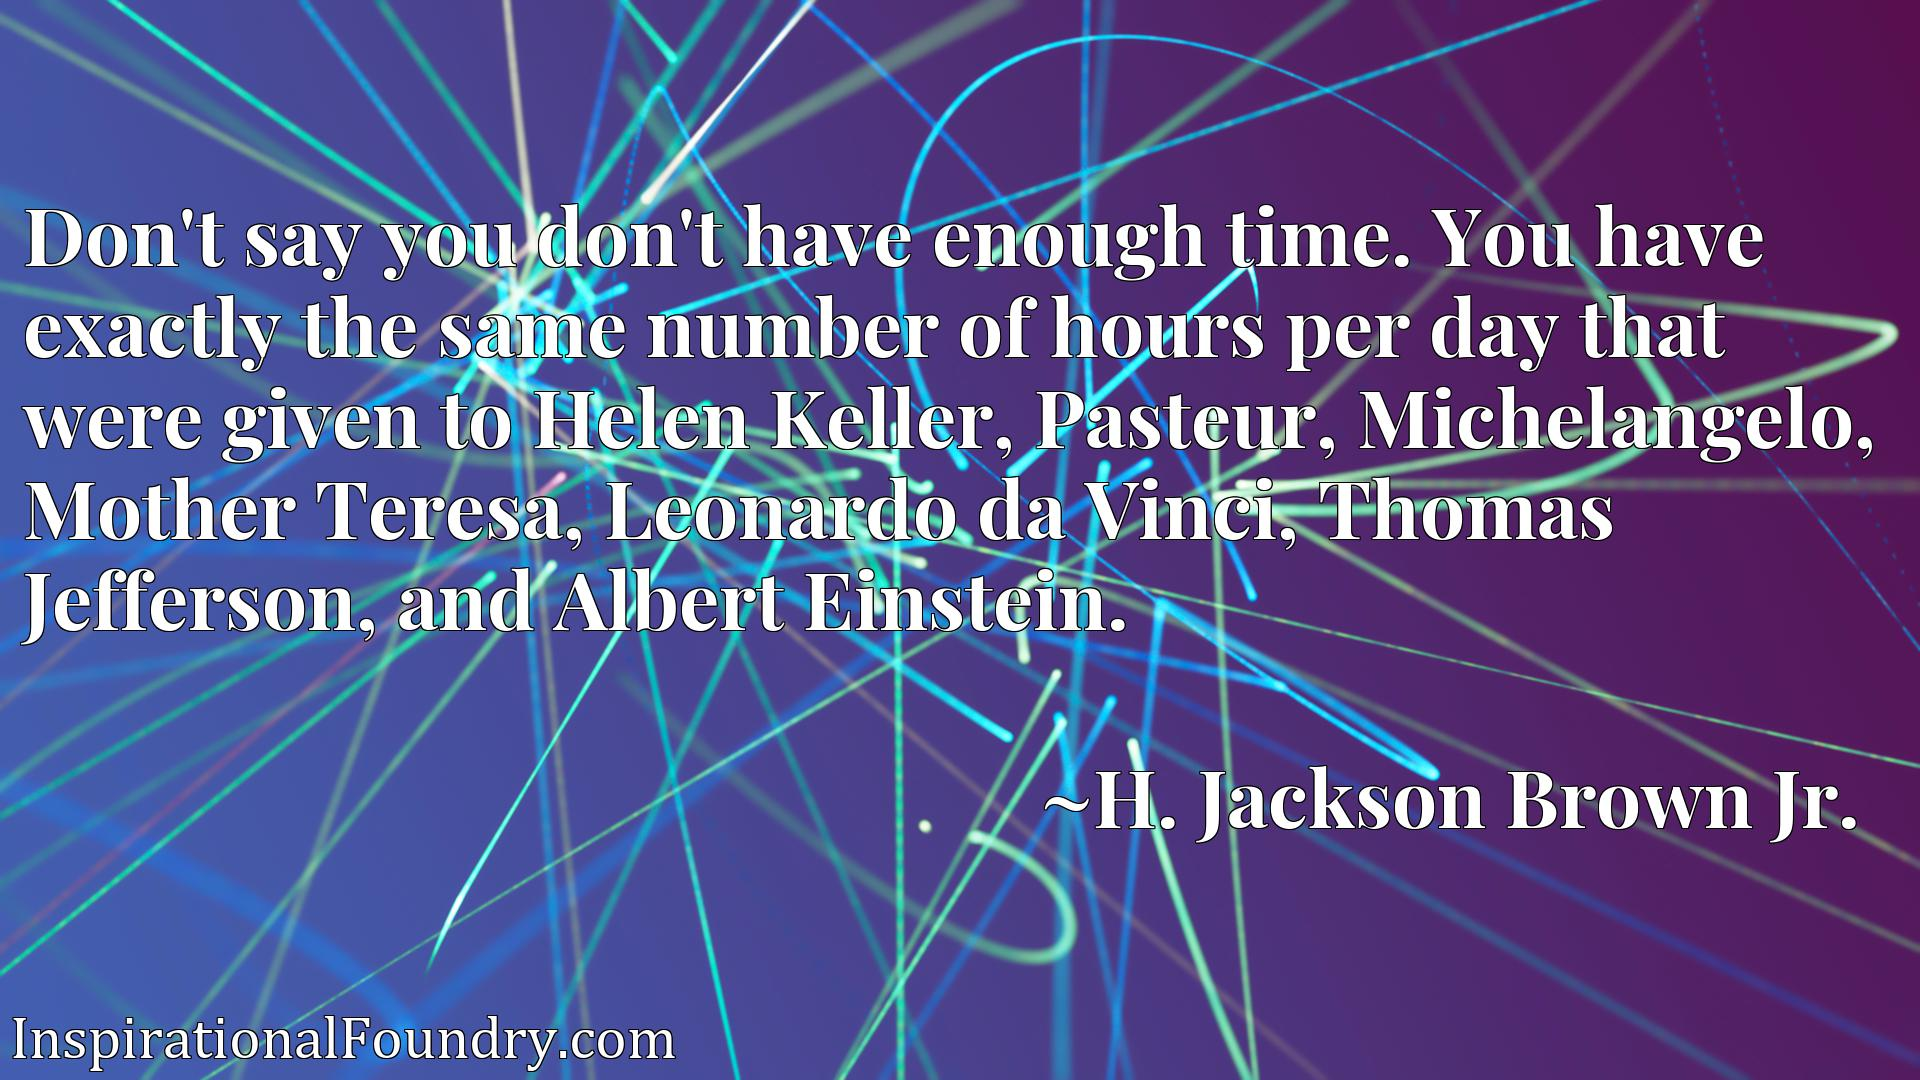 Don't say you don't have enough time. You have exactly the same number of hours per day that were given to Helen Keller, Pasteur, Michelangelo, Mother Teresa, Leonardo da Vinci, Thomas Jefferson, and Albert Einstein.